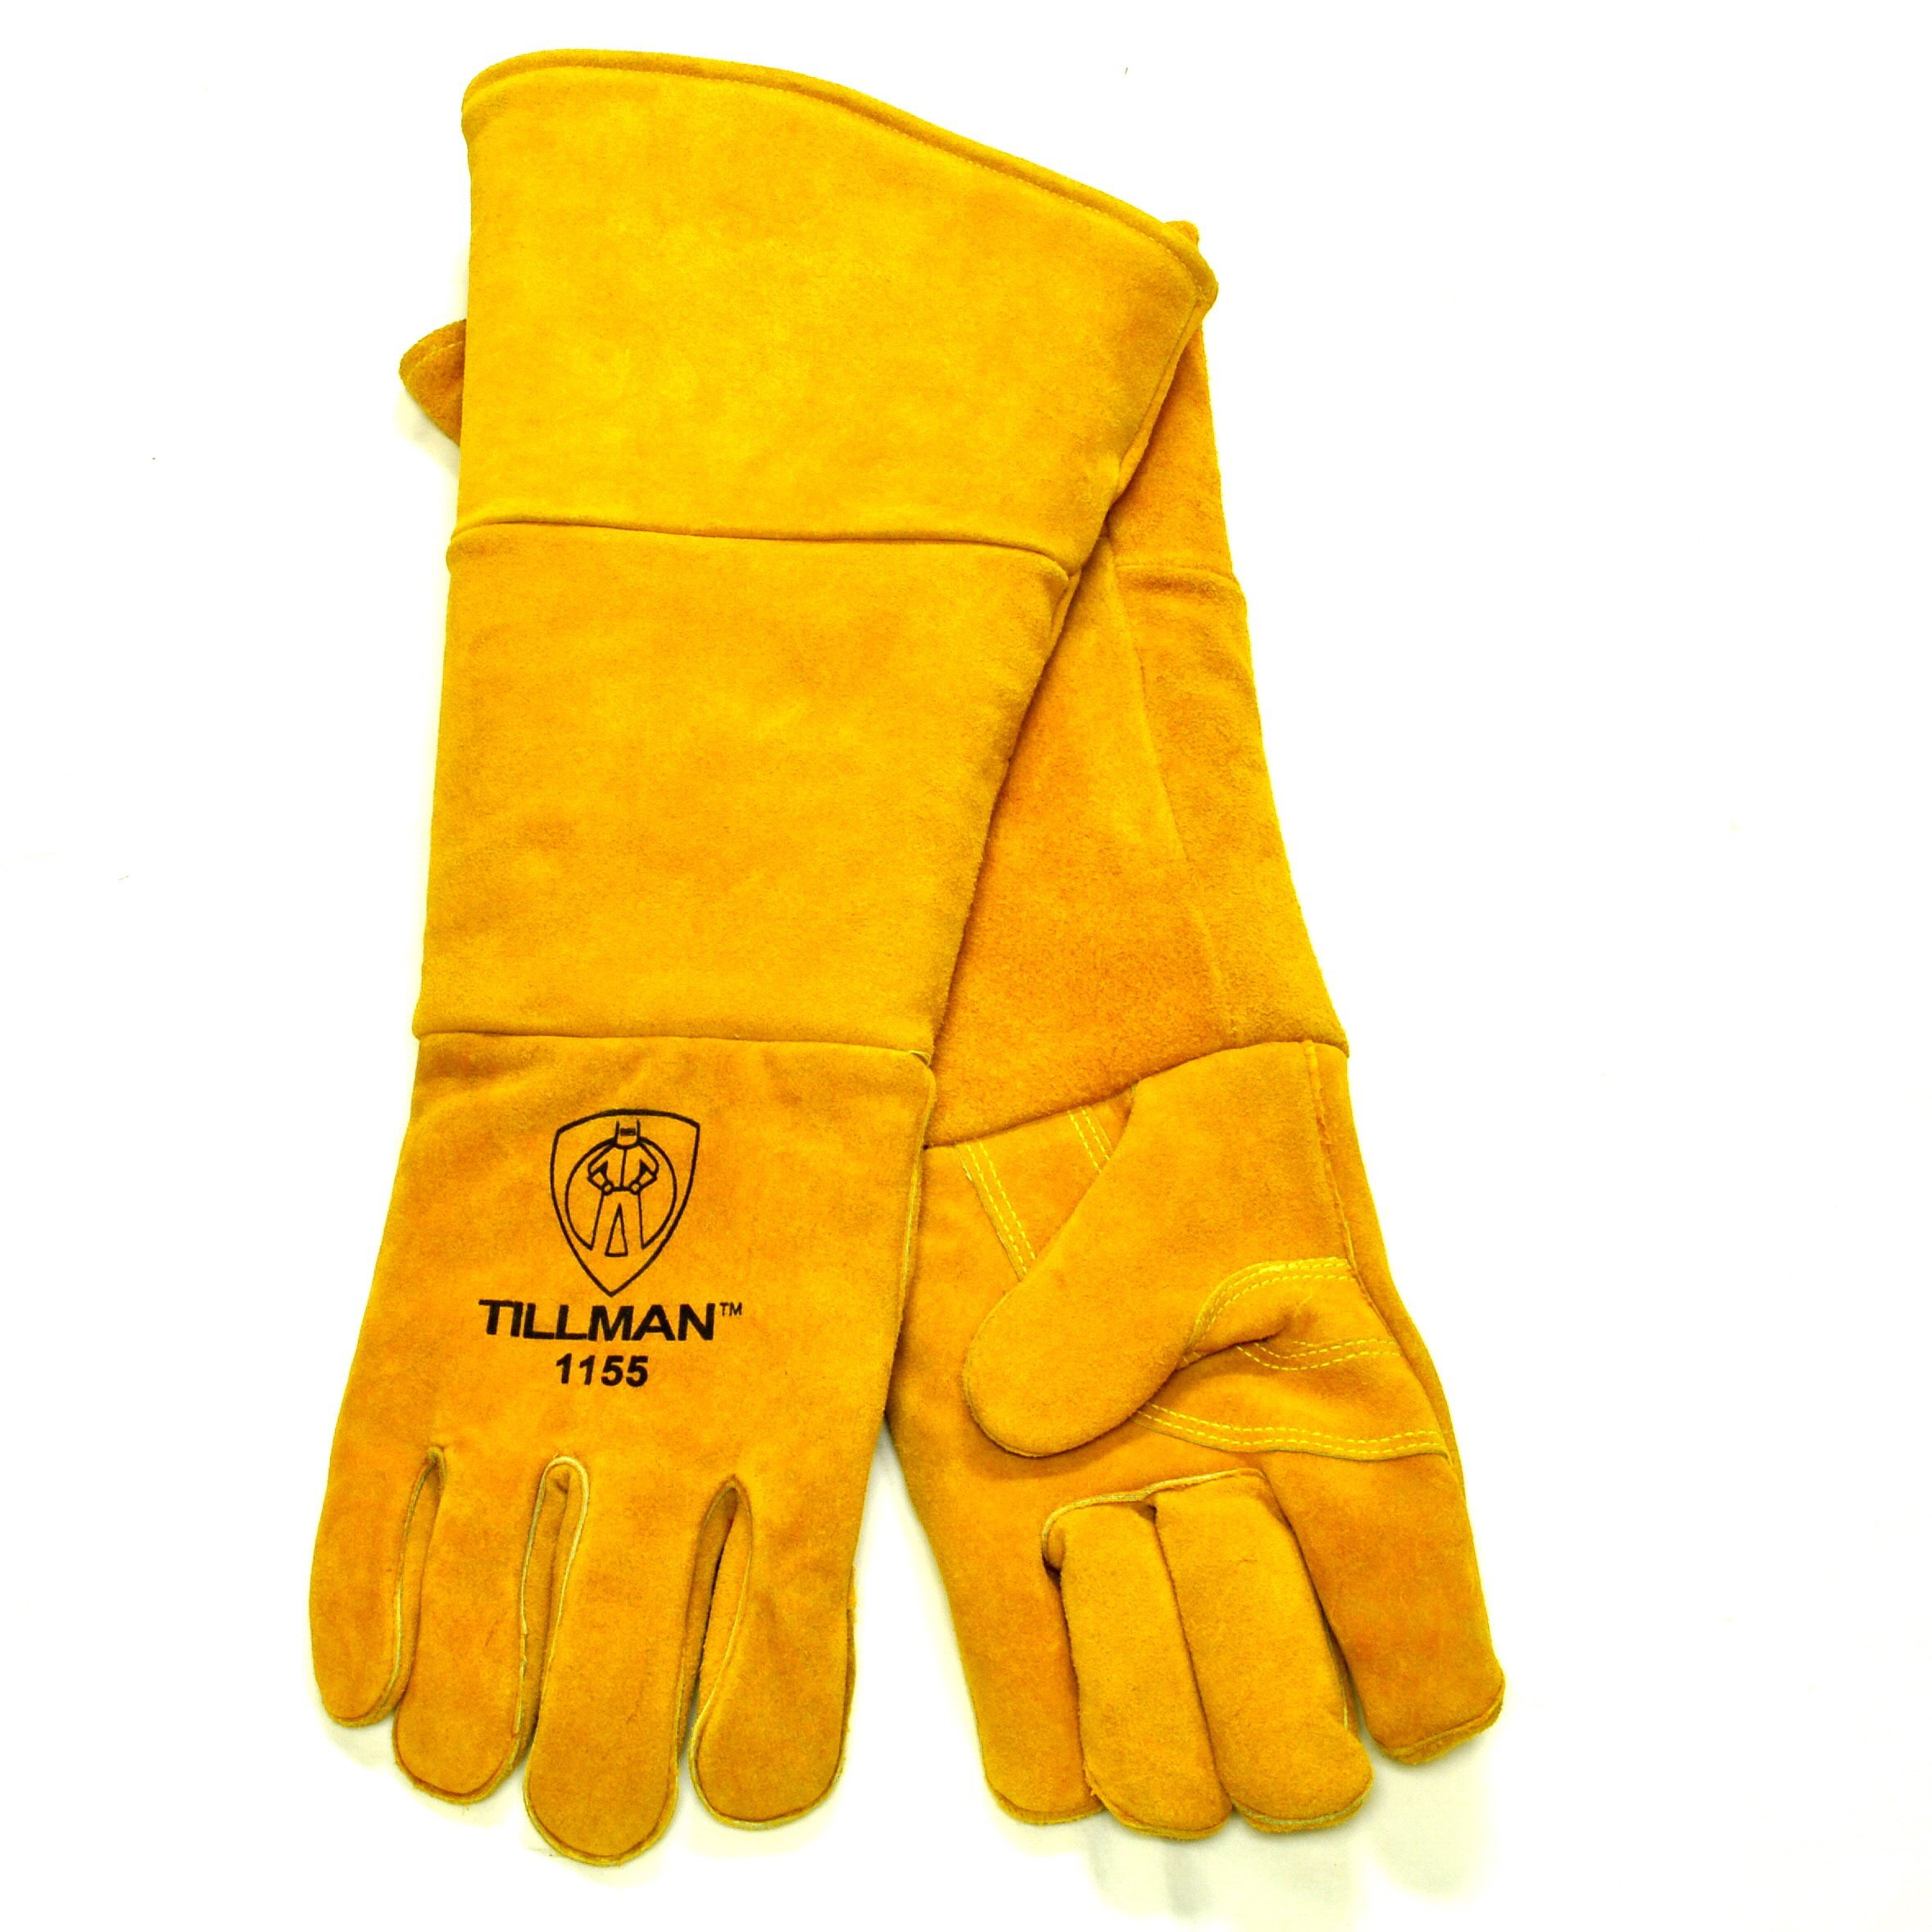 Tillman 1155 Cowhide Stick Welding Glove Padded/Insulated Cuff, Brown 20'', Large